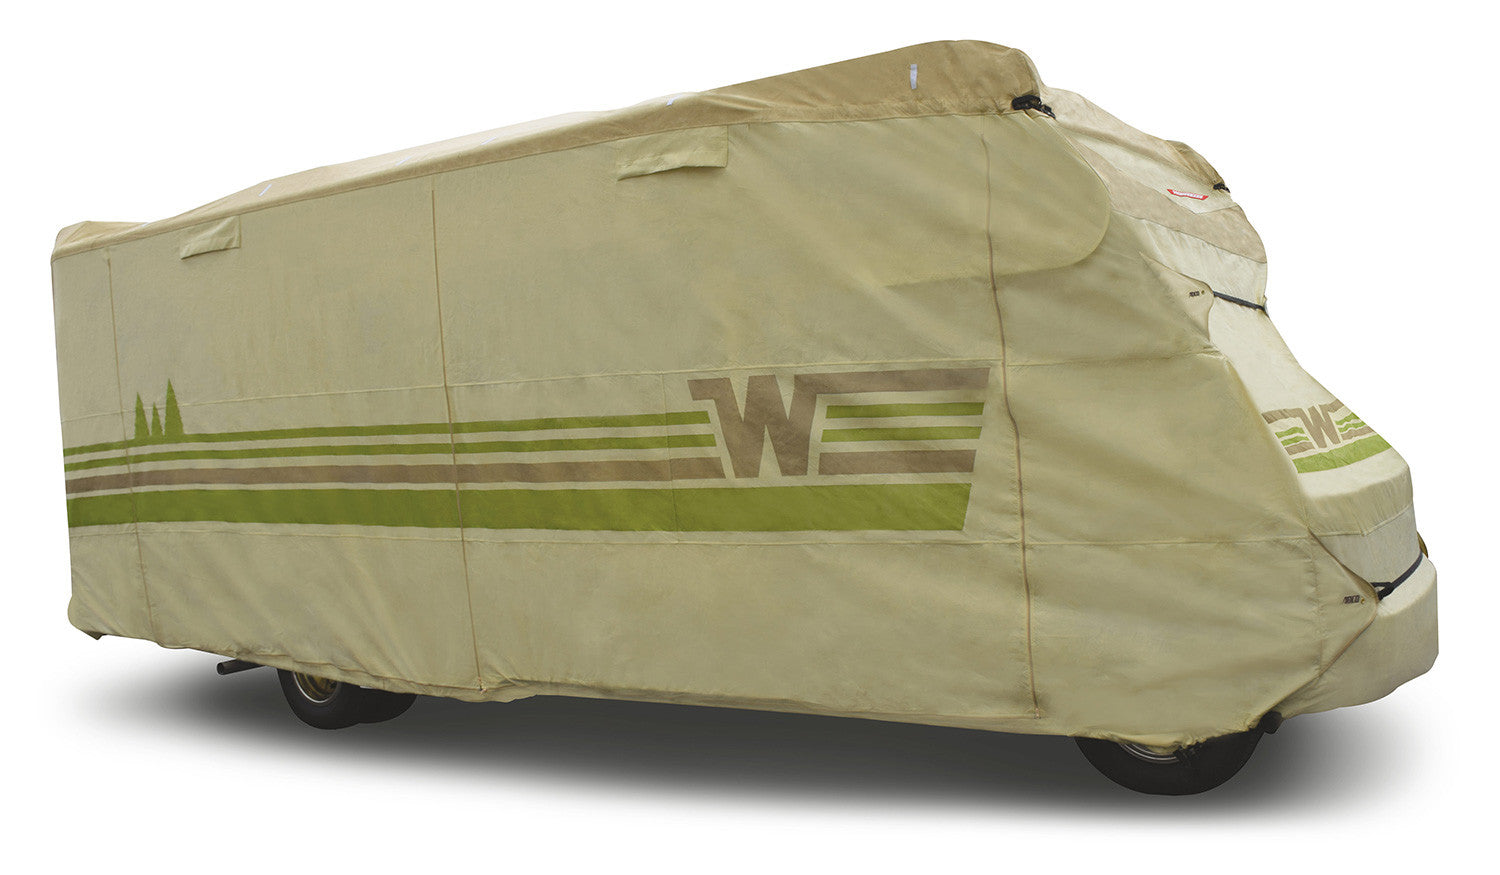 Rv Covers Motorhome Trailer Covers Lazydays Rv Autos Post